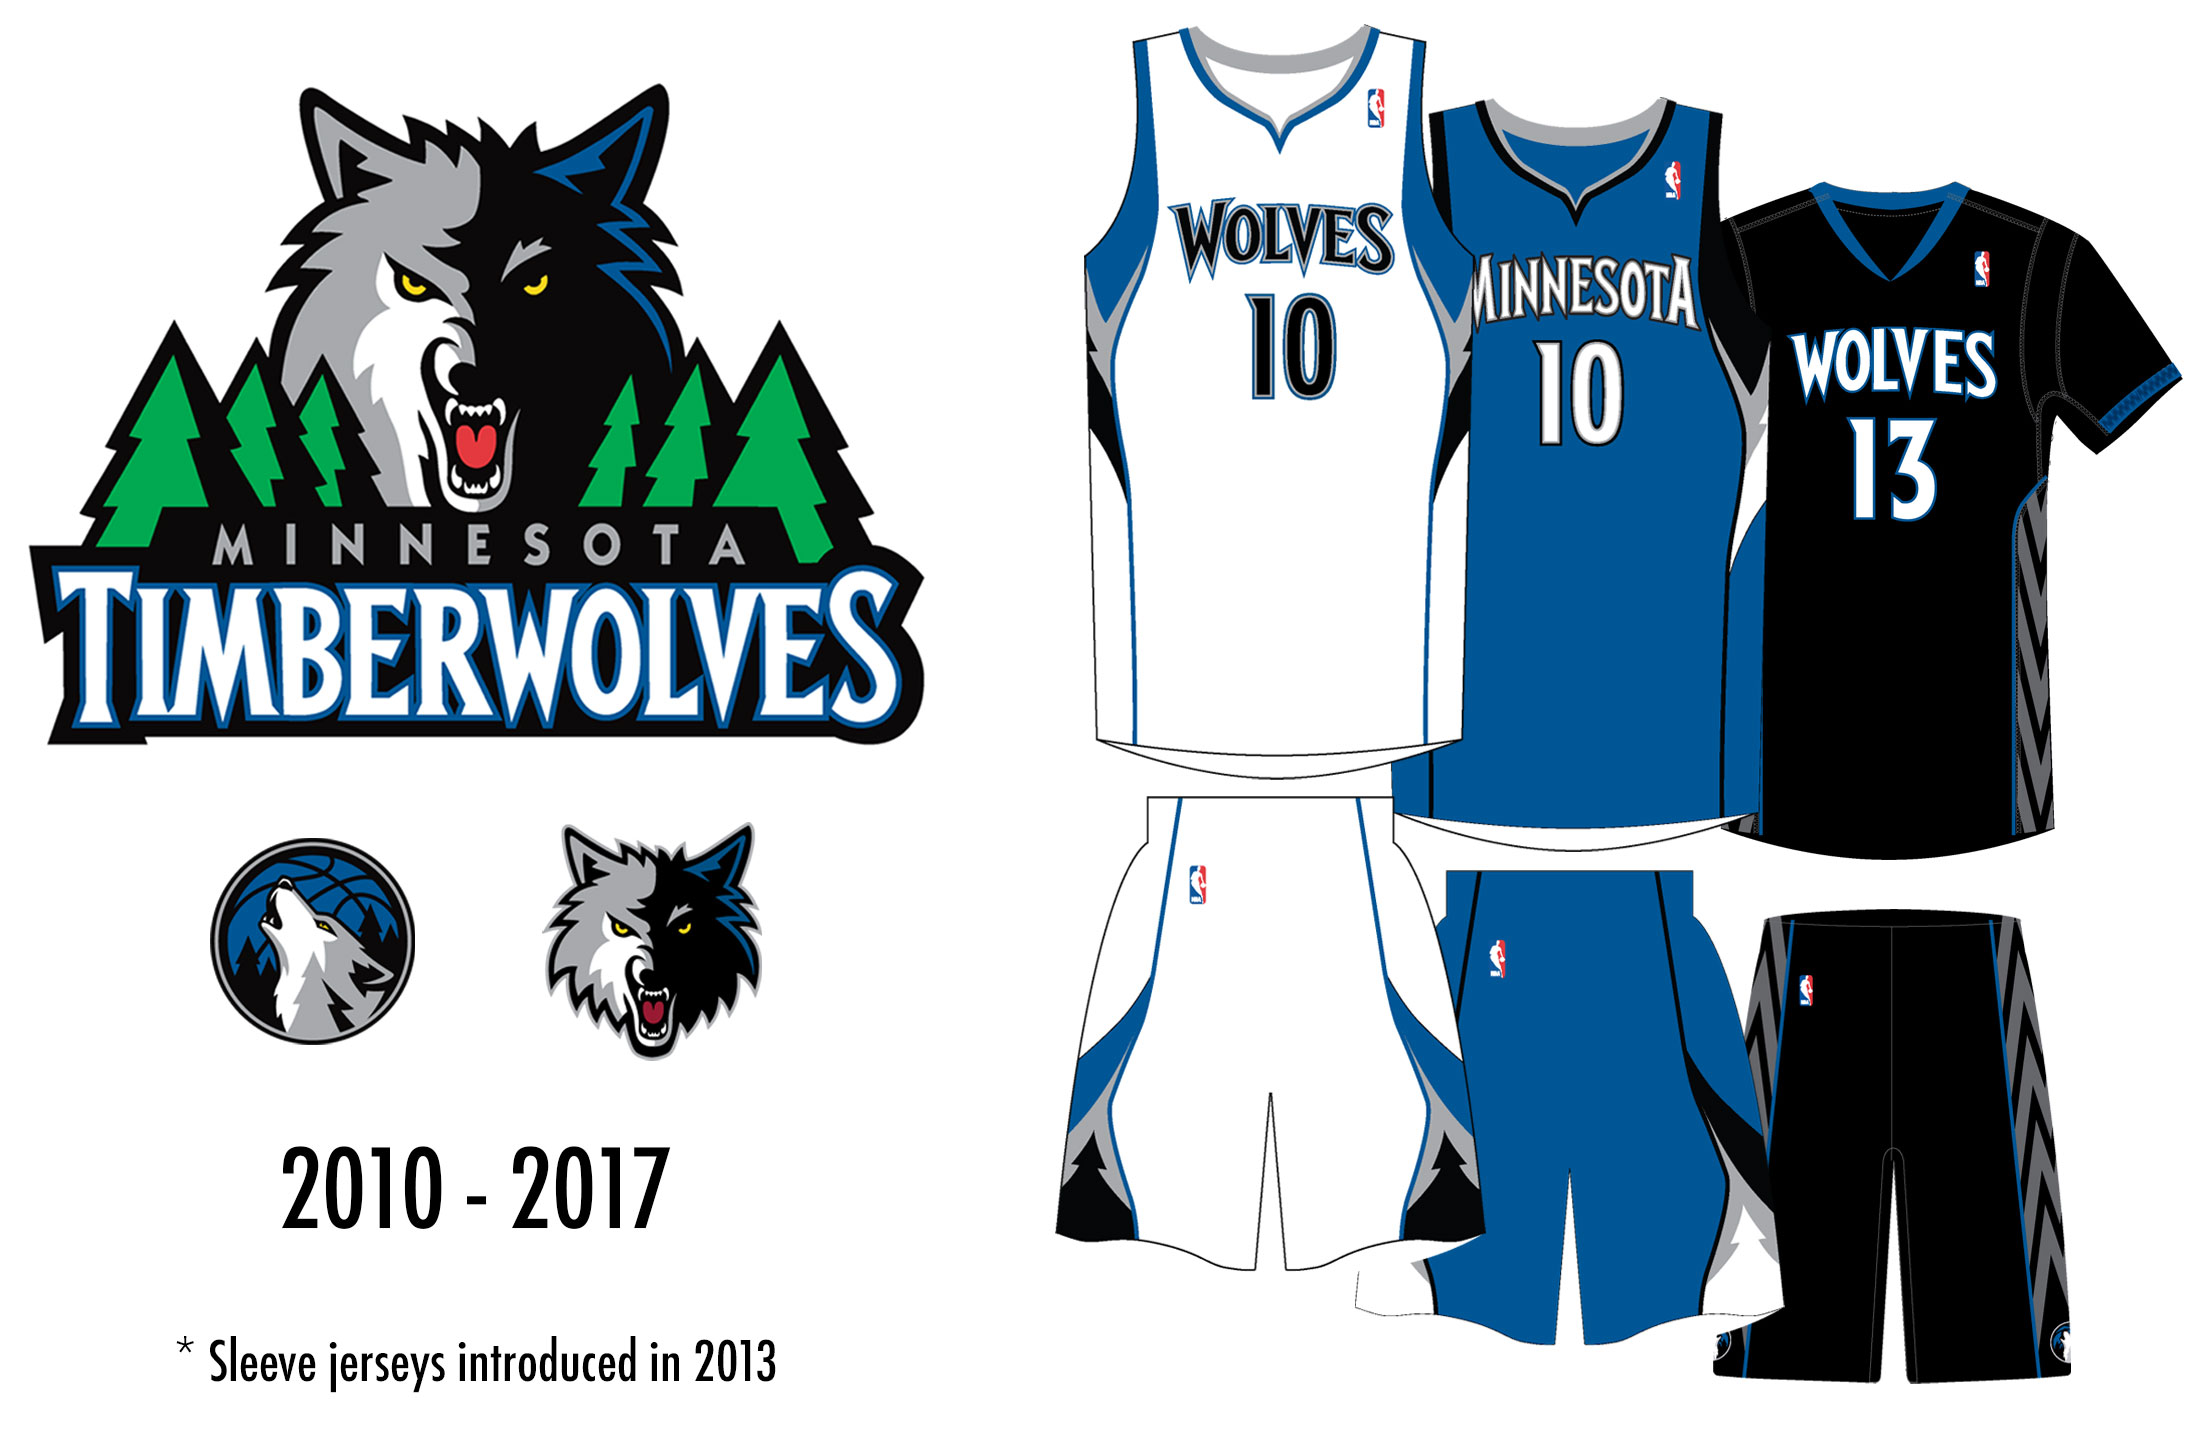 on sale f9f01 88f5e New Era. New Threads. | An In-Depth Look at the New Wolves ...